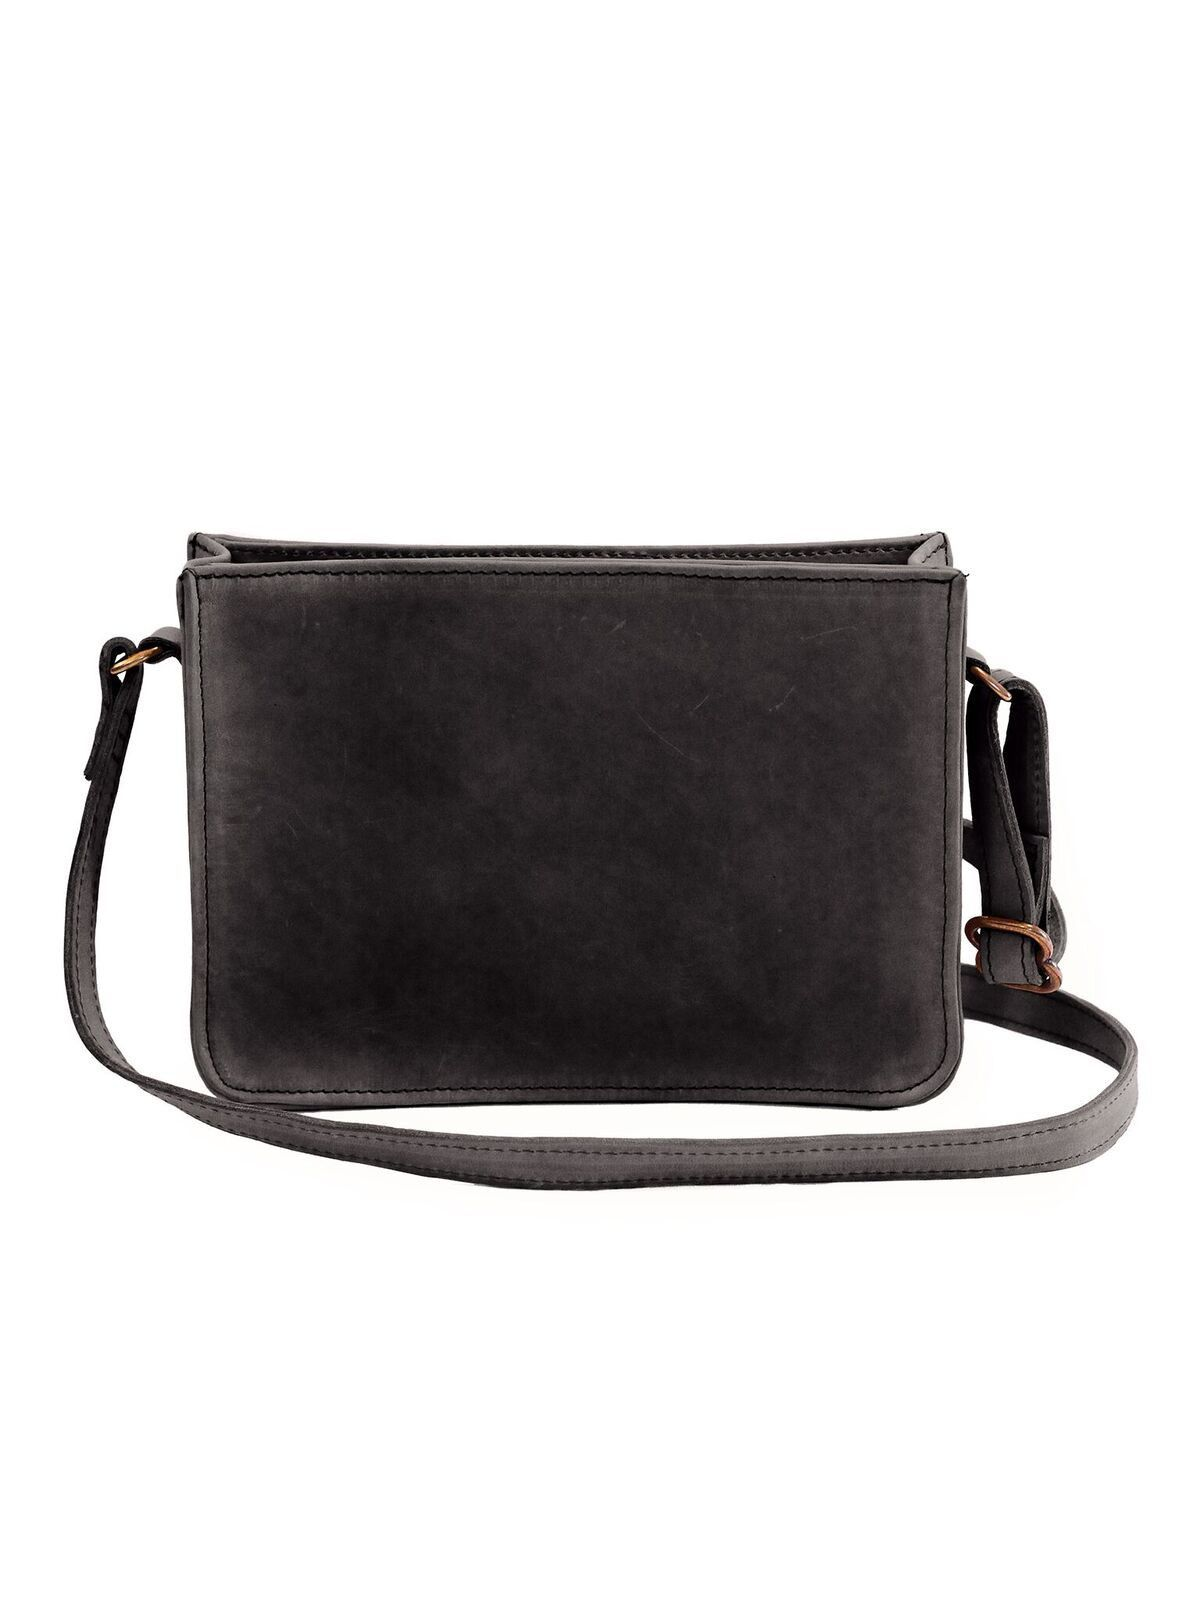 0d878e4fdd Tigist Top Zip Crossbody